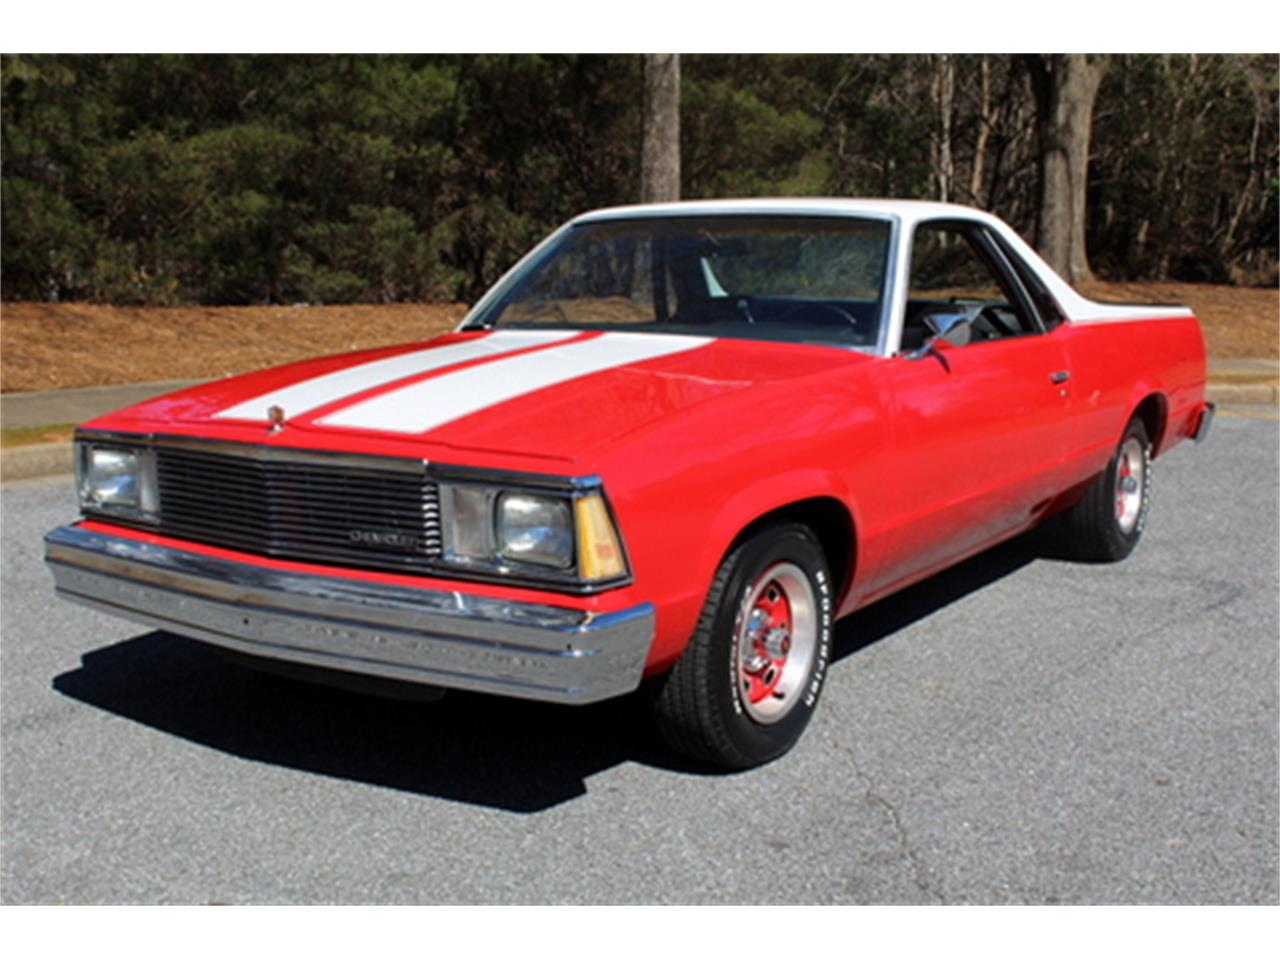 1980 El Camino Gas Mileage For Sale 1980 Chevrolet El Camino In Roswell Georgia